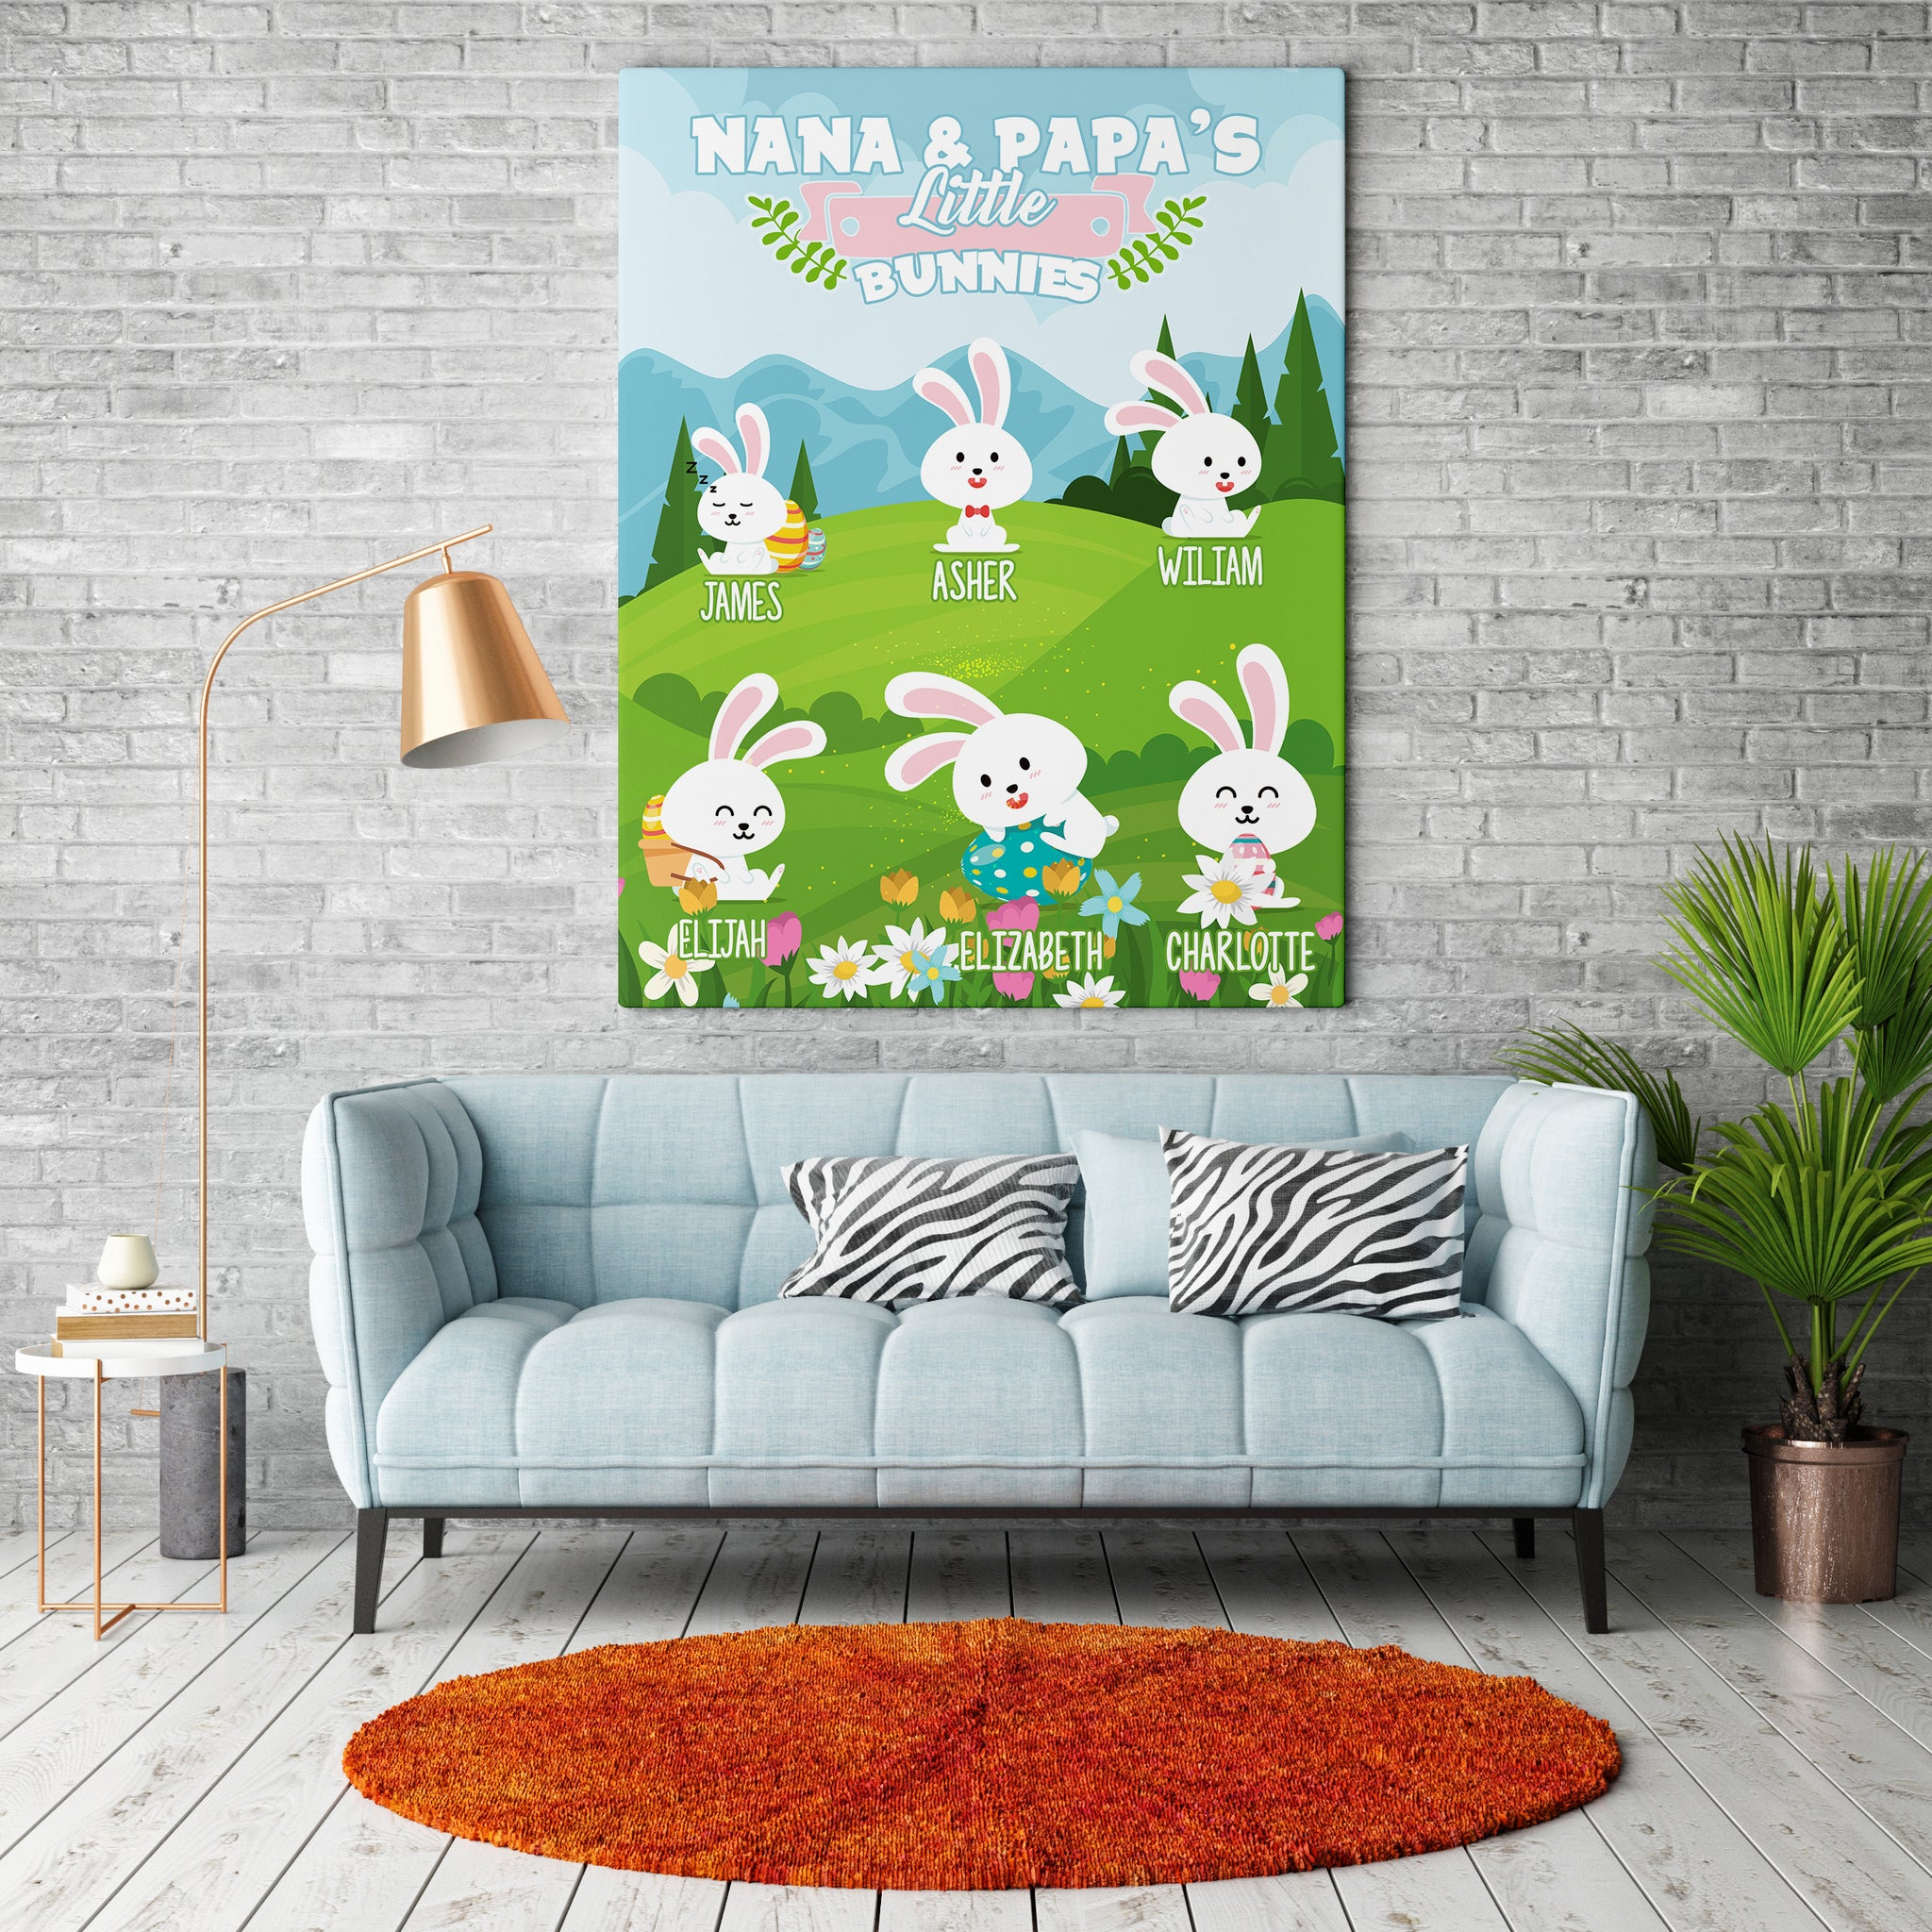 Personalized Grandma's Little Bunnies - Easter Canvas